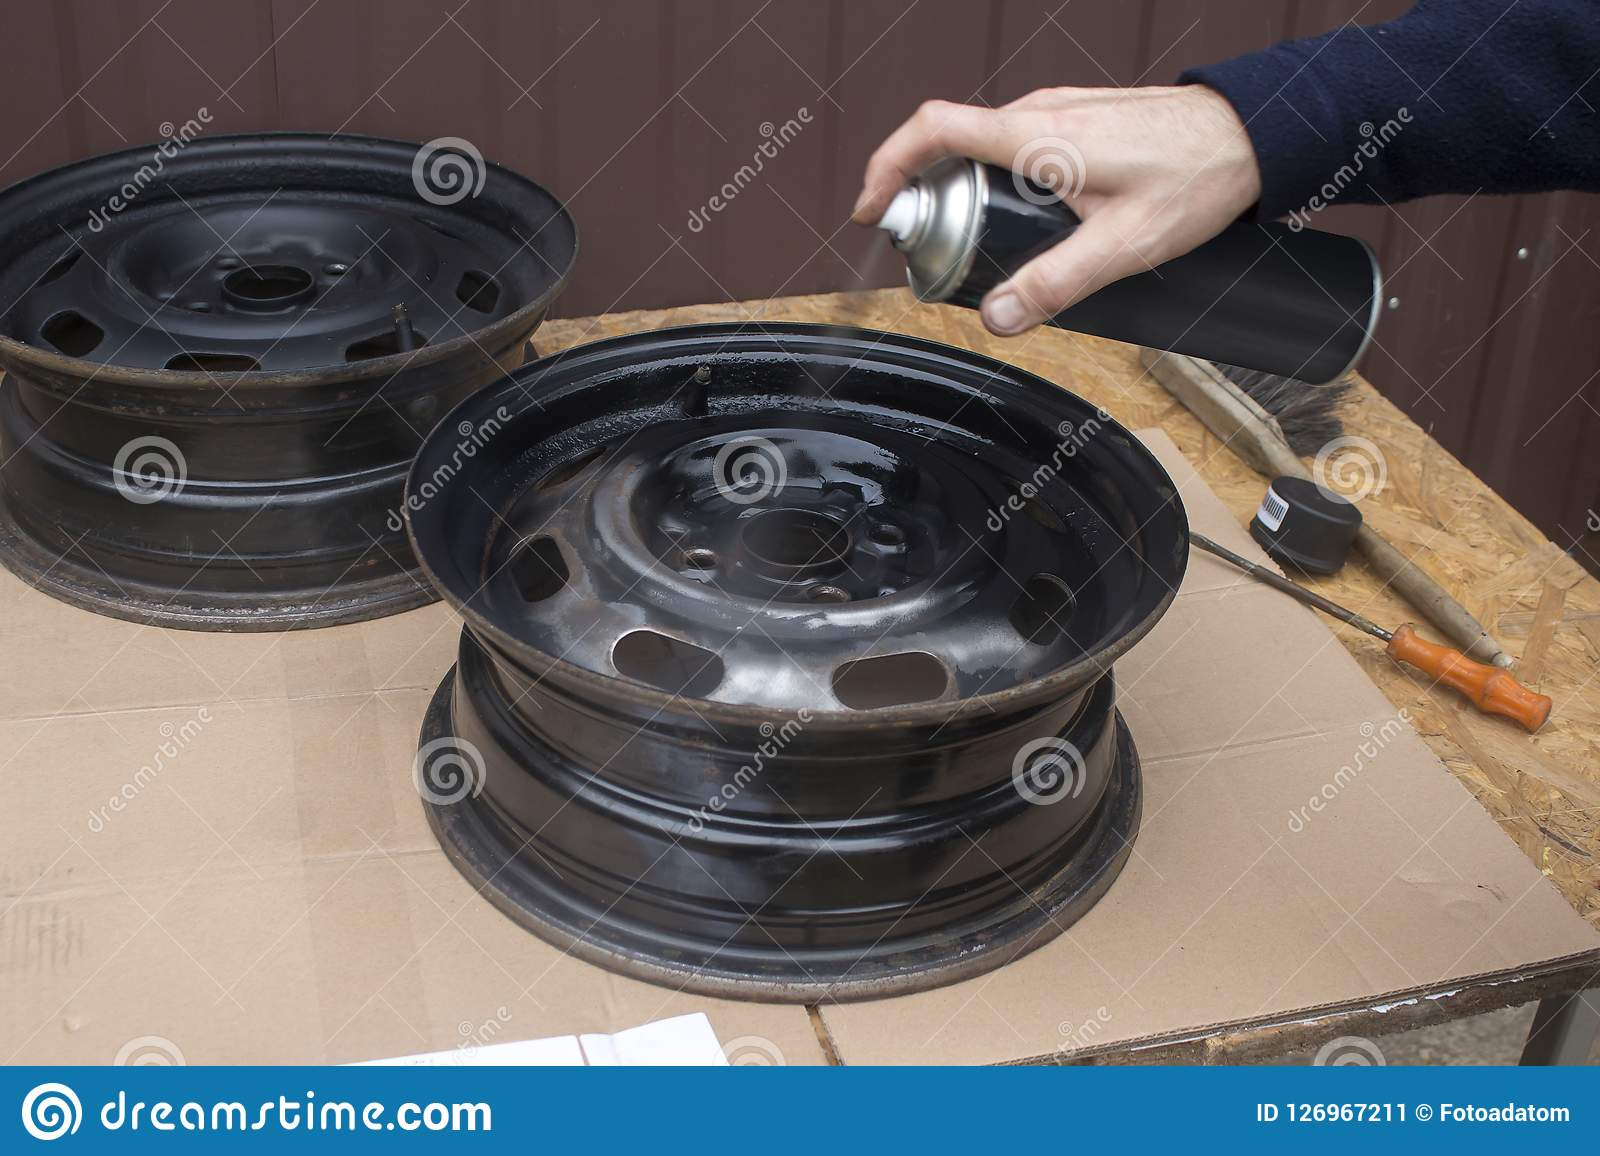 7  Paint The Steel Car Wheel In Black With Spray Paint